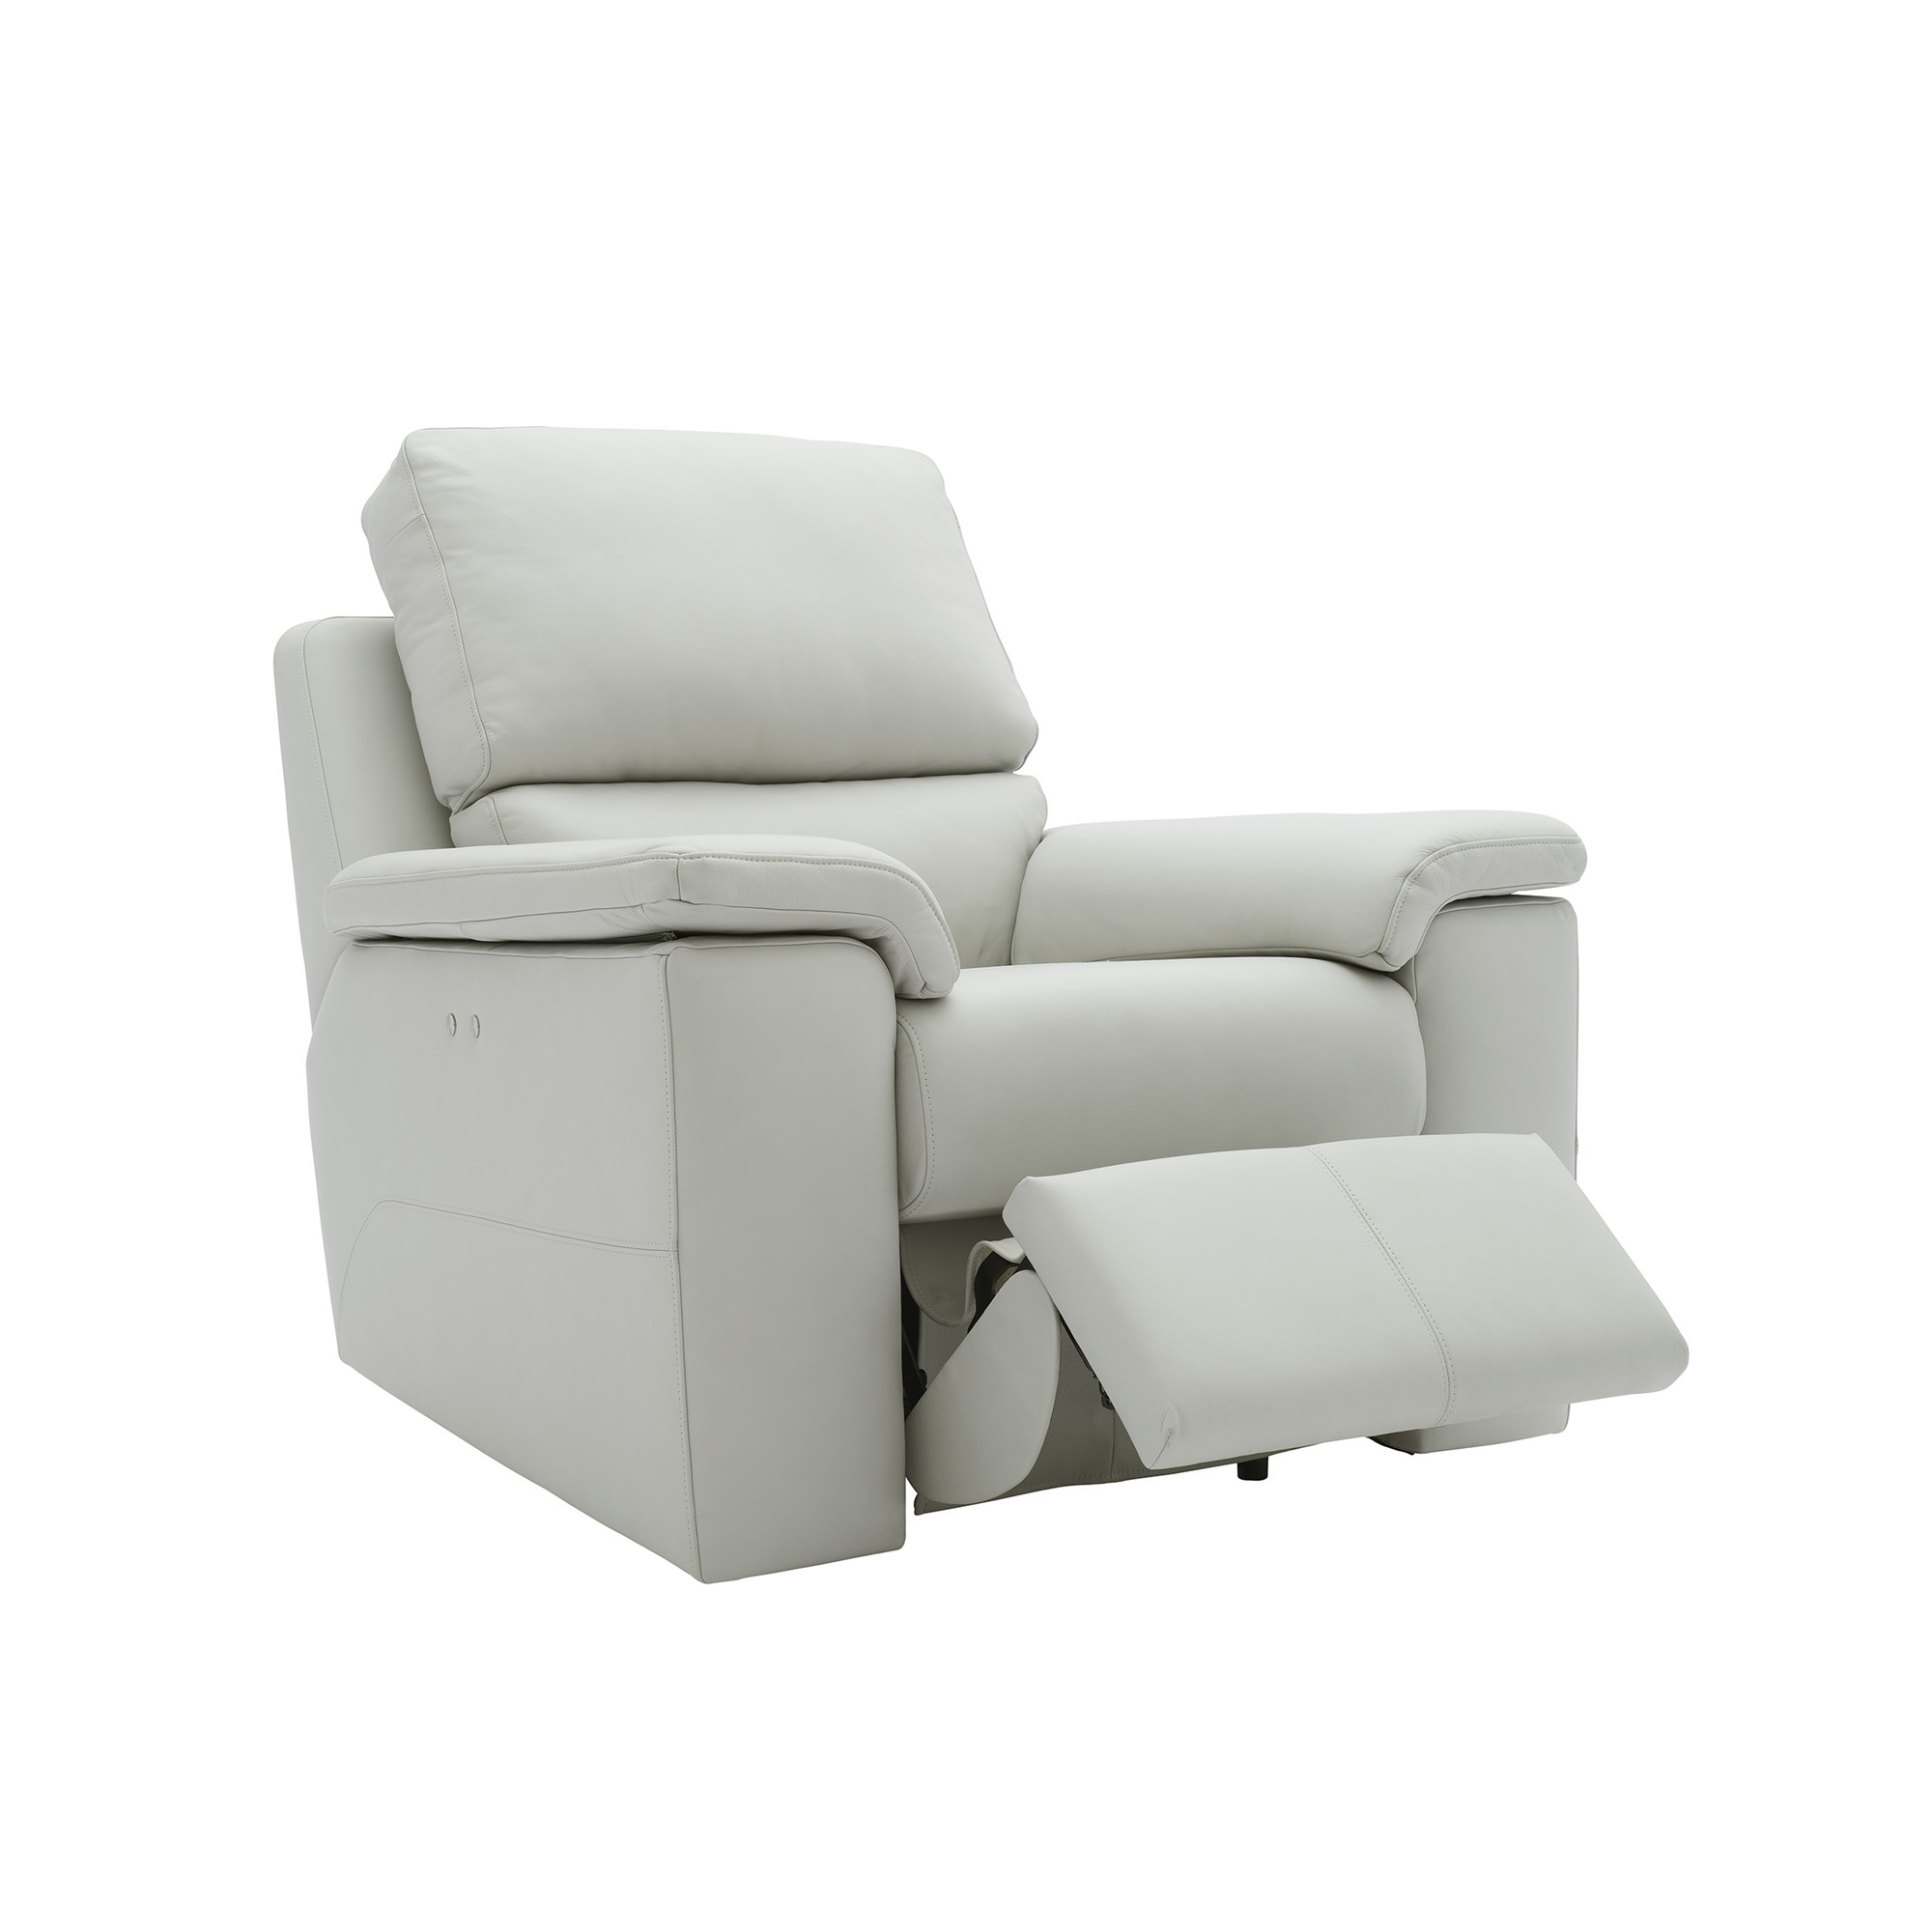 Cool Taylor Manual Recliner Chair Alphanode Cool Chair Designs And Ideas Alphanodeonline